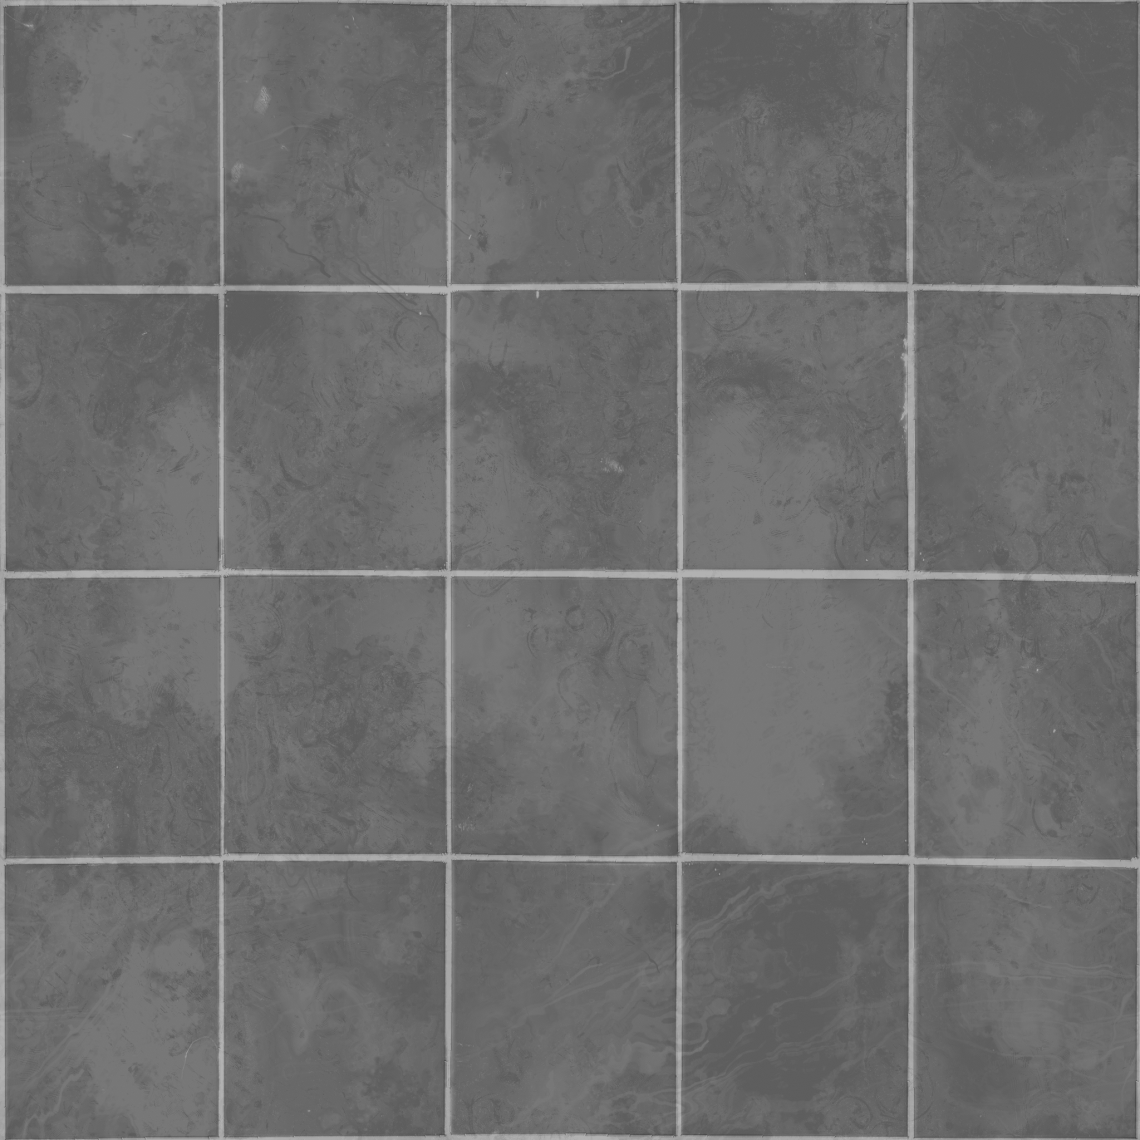 Simple-Tiles-03-Roughness